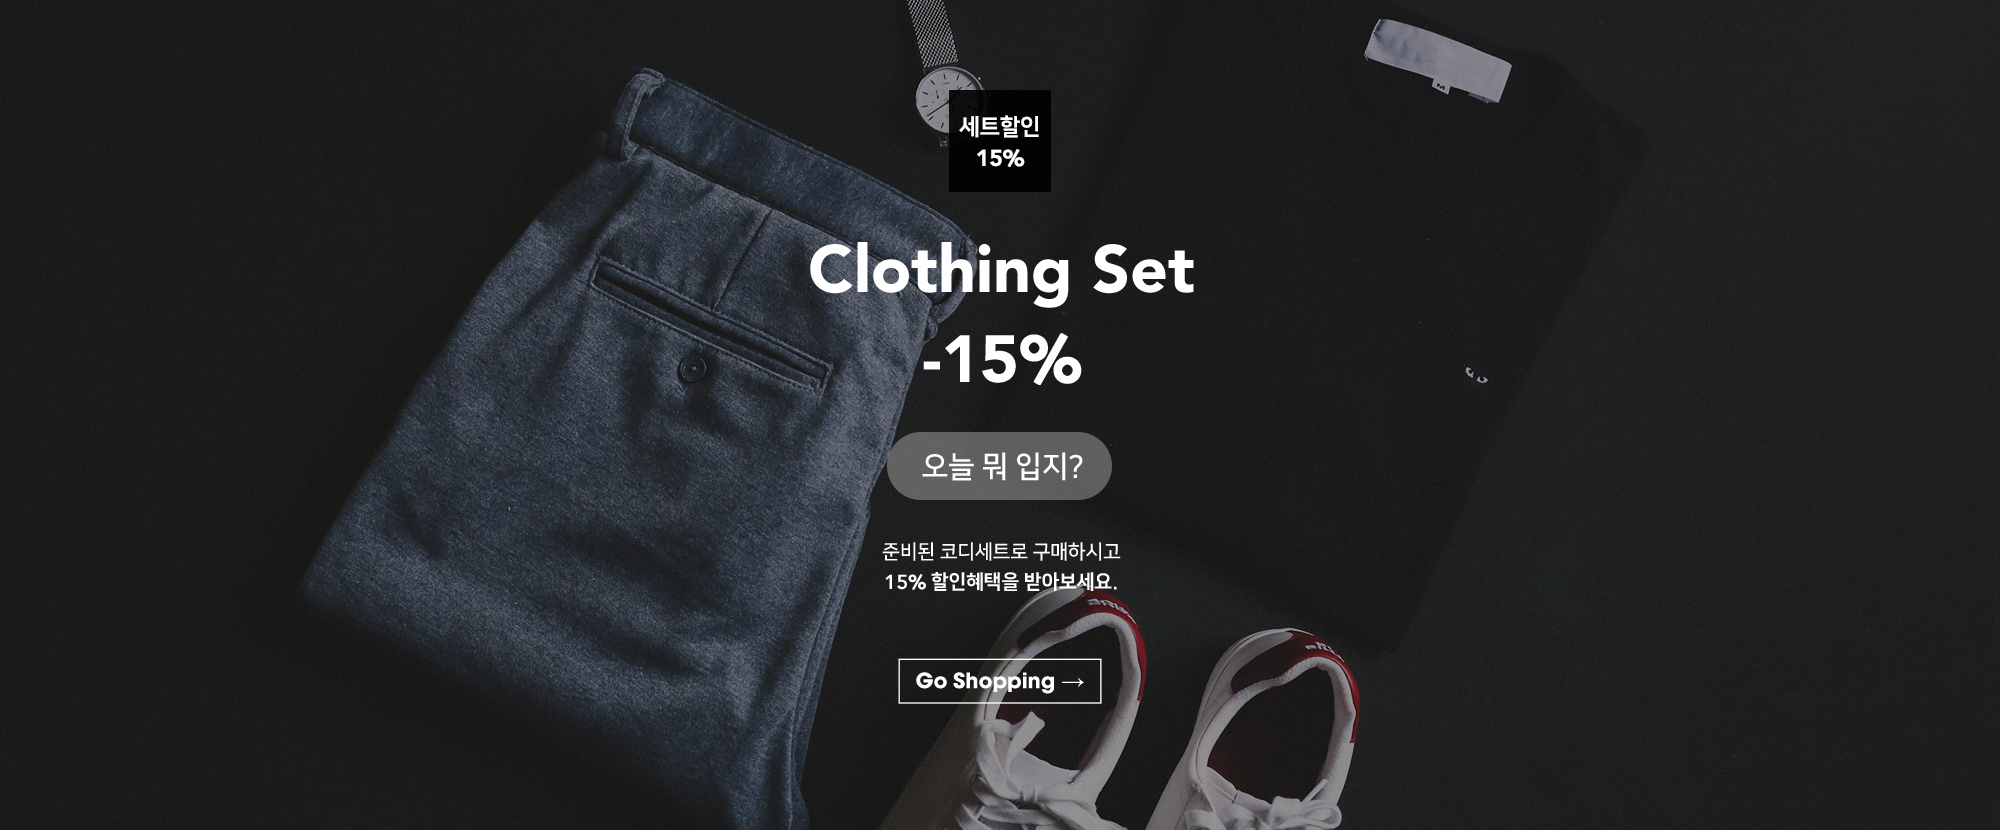 Clothing Set 15%DC